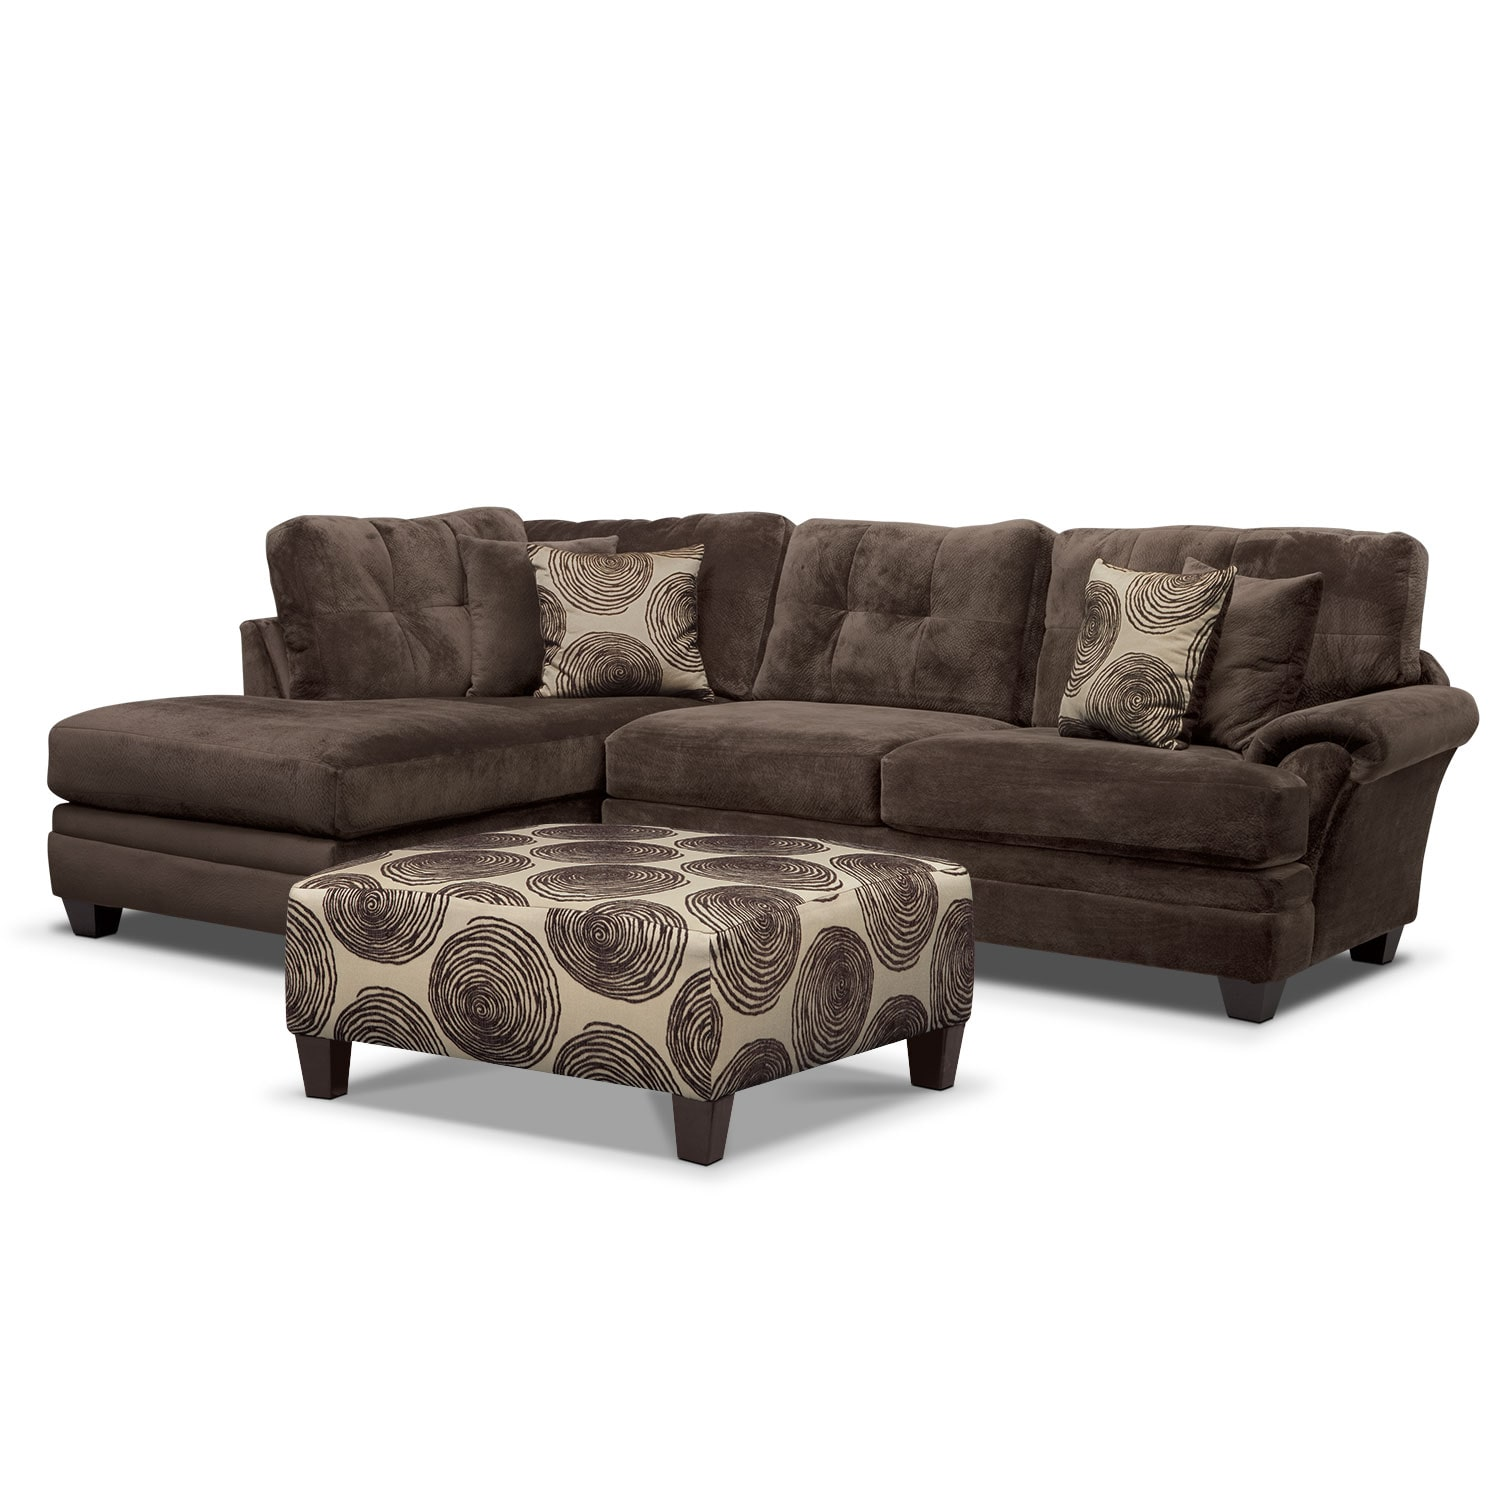 Cordelle 2-Piece Left-Facing Chaise Sectional and Cocktail Ottoman Set - Chocolate  sc 1 st  American Signature Furniture : american signature chaise - Sectionals, Sofas & Couches